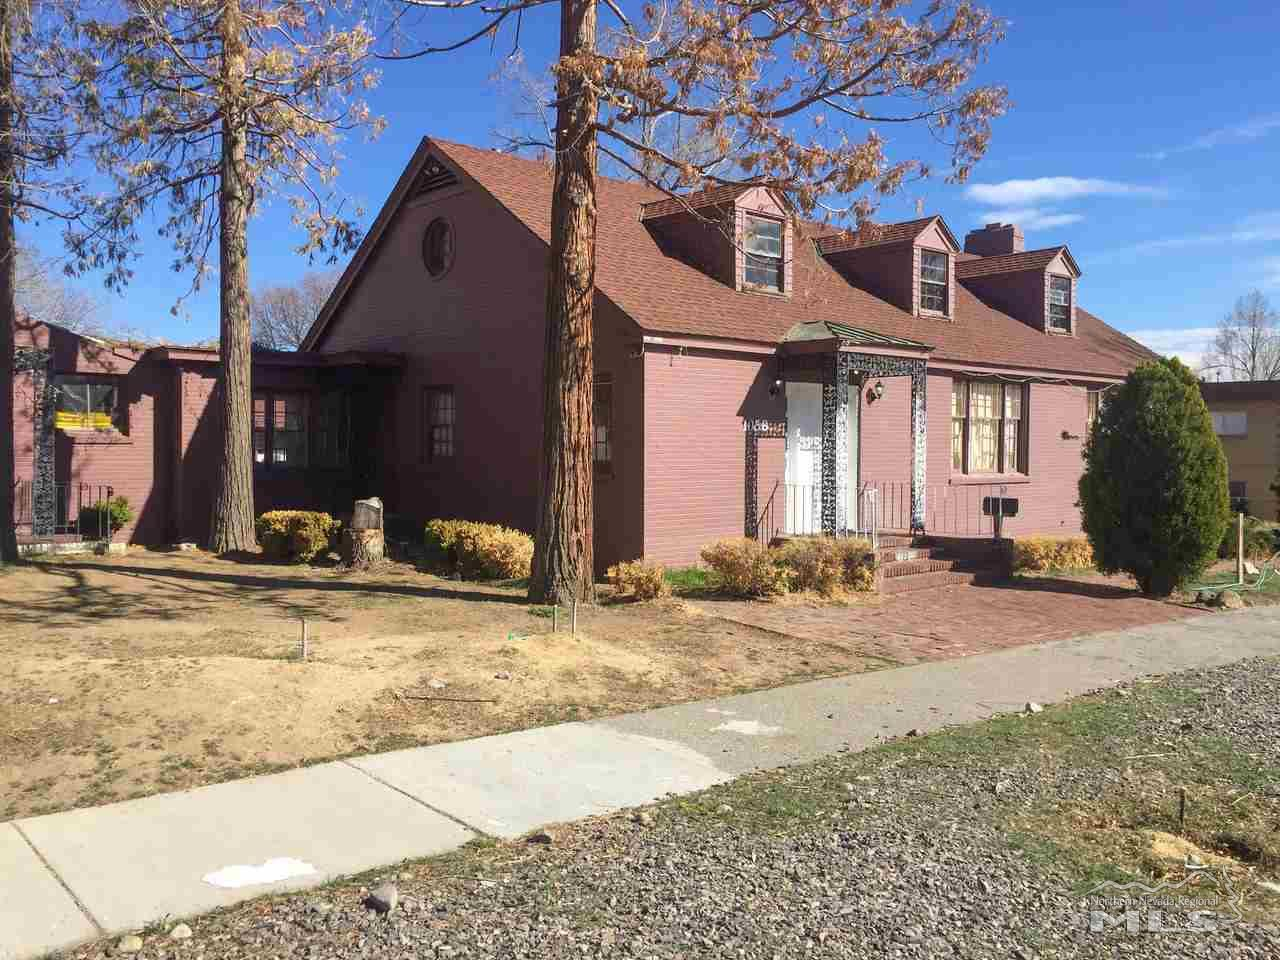 Image for 1058 BELL ST, Reno, NV 89503